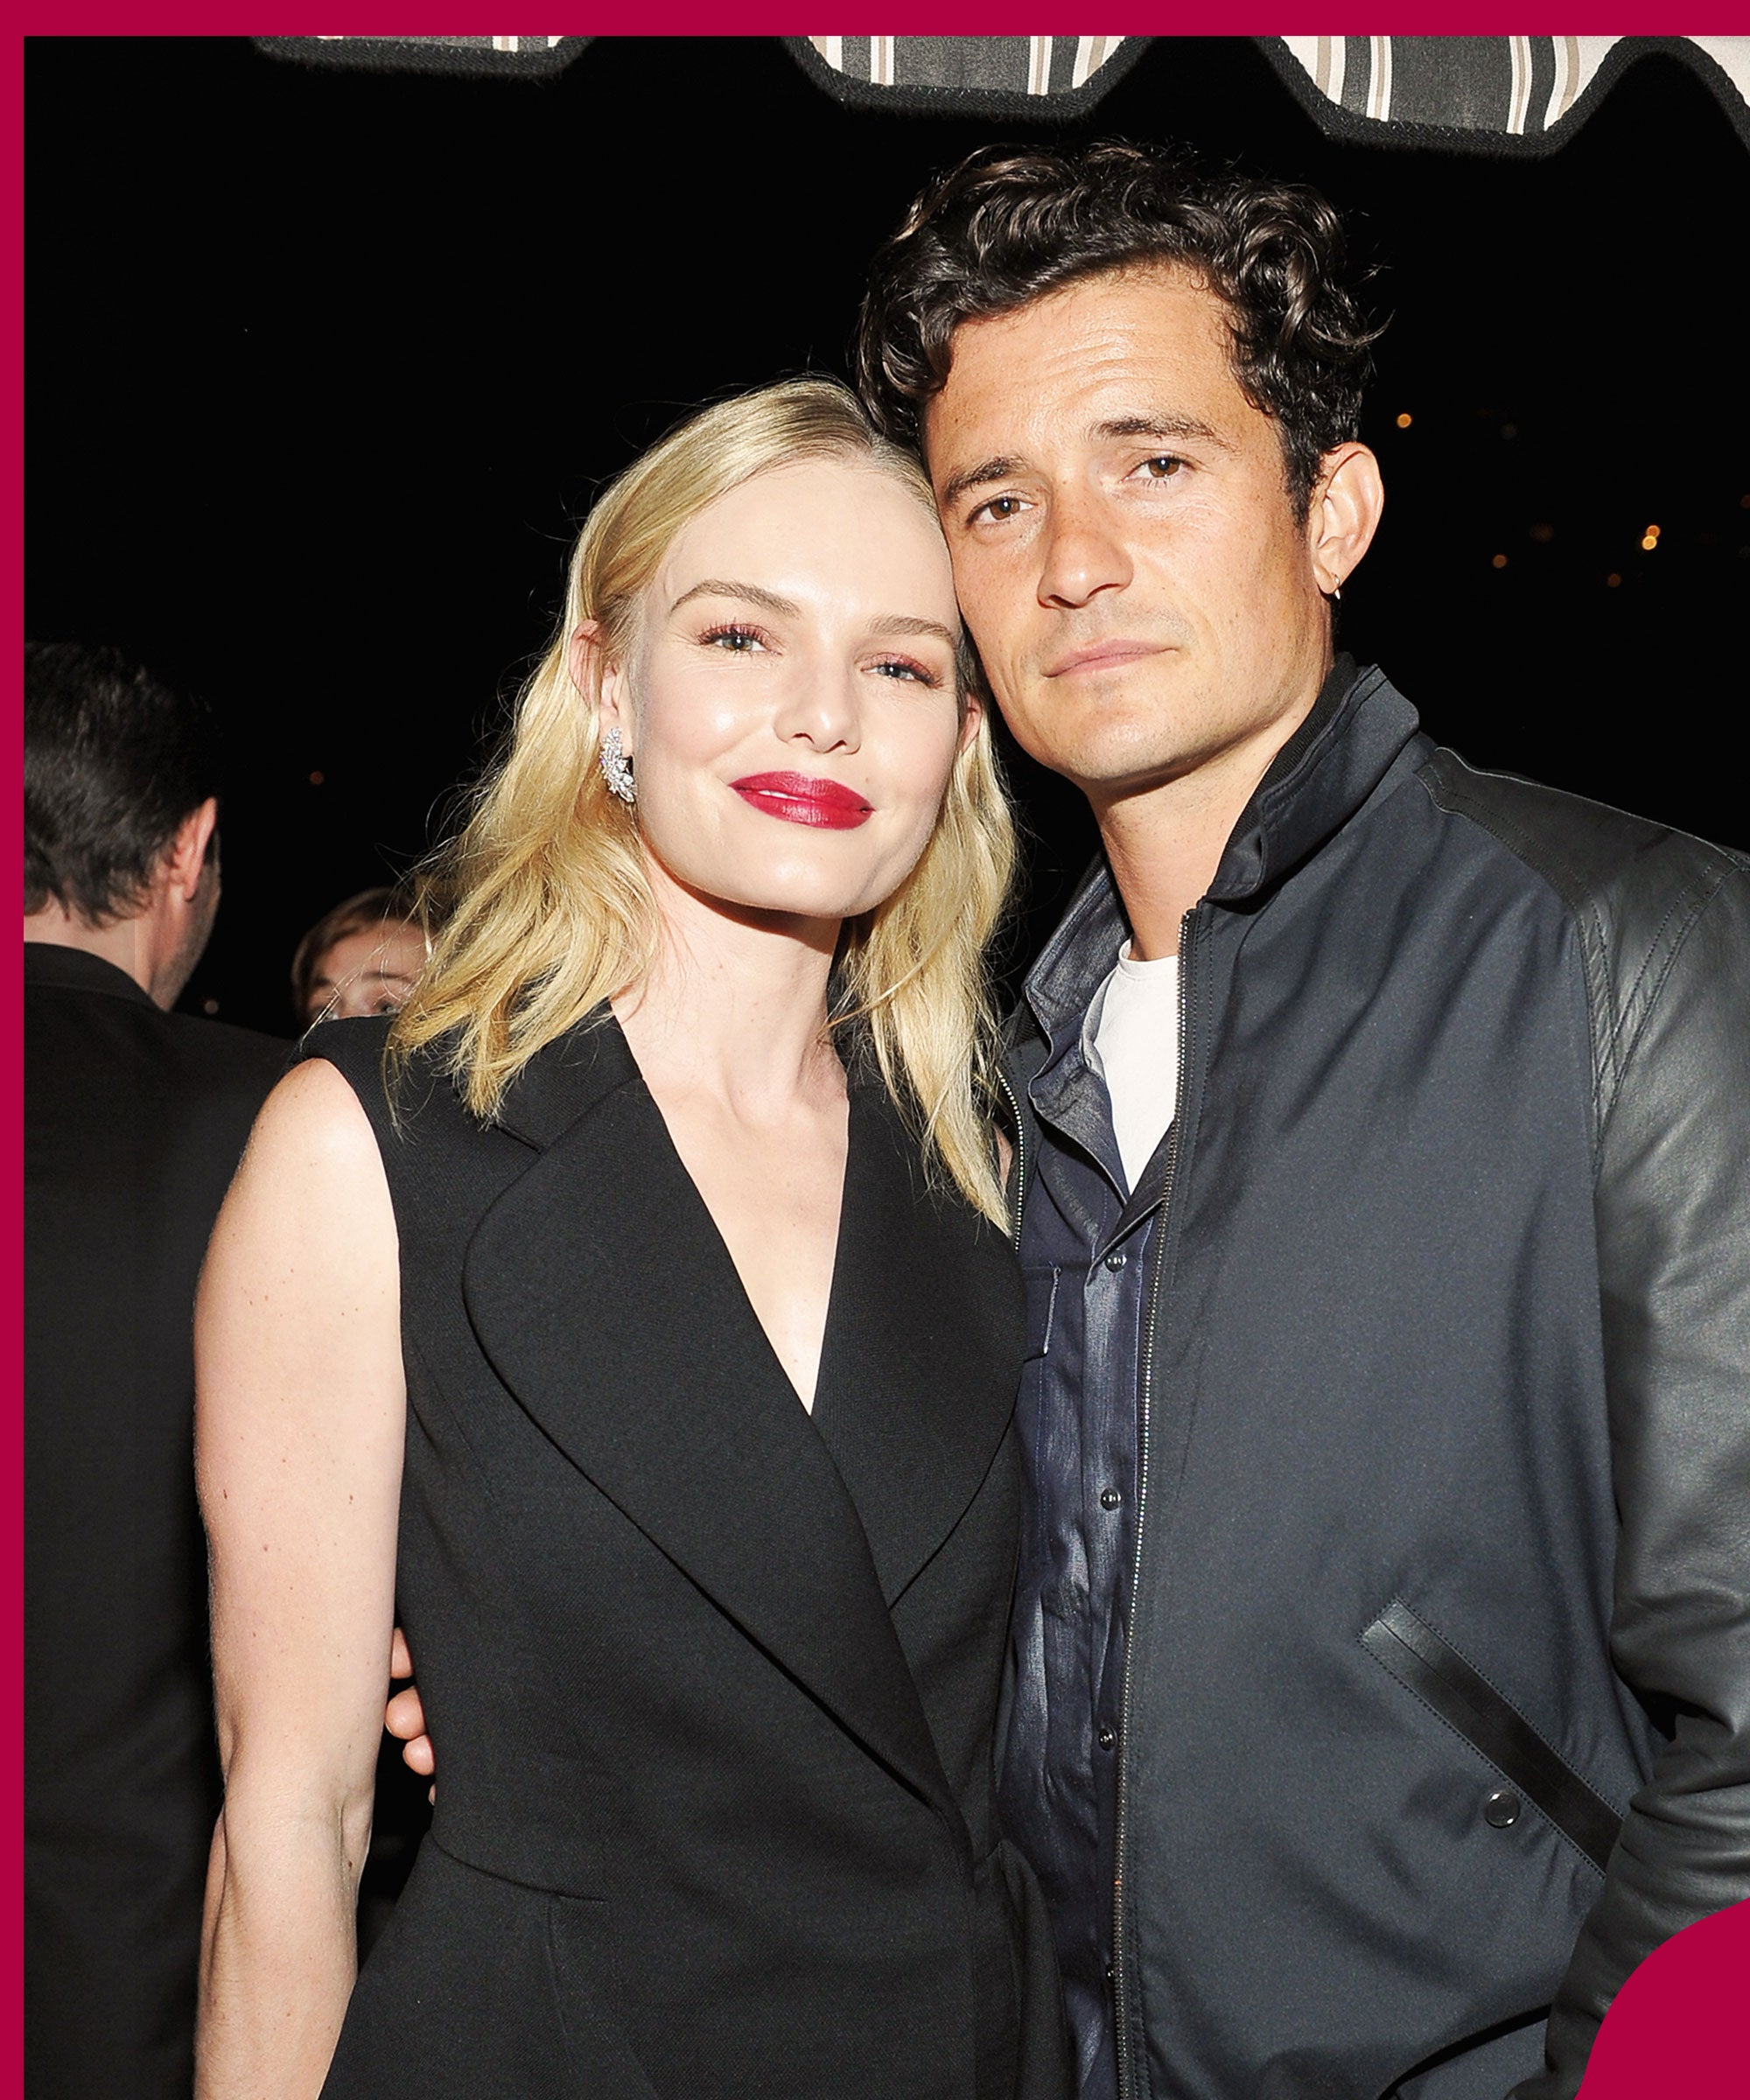 Kate Bosworth Swore Off Actors After Dating Orlando Bloom